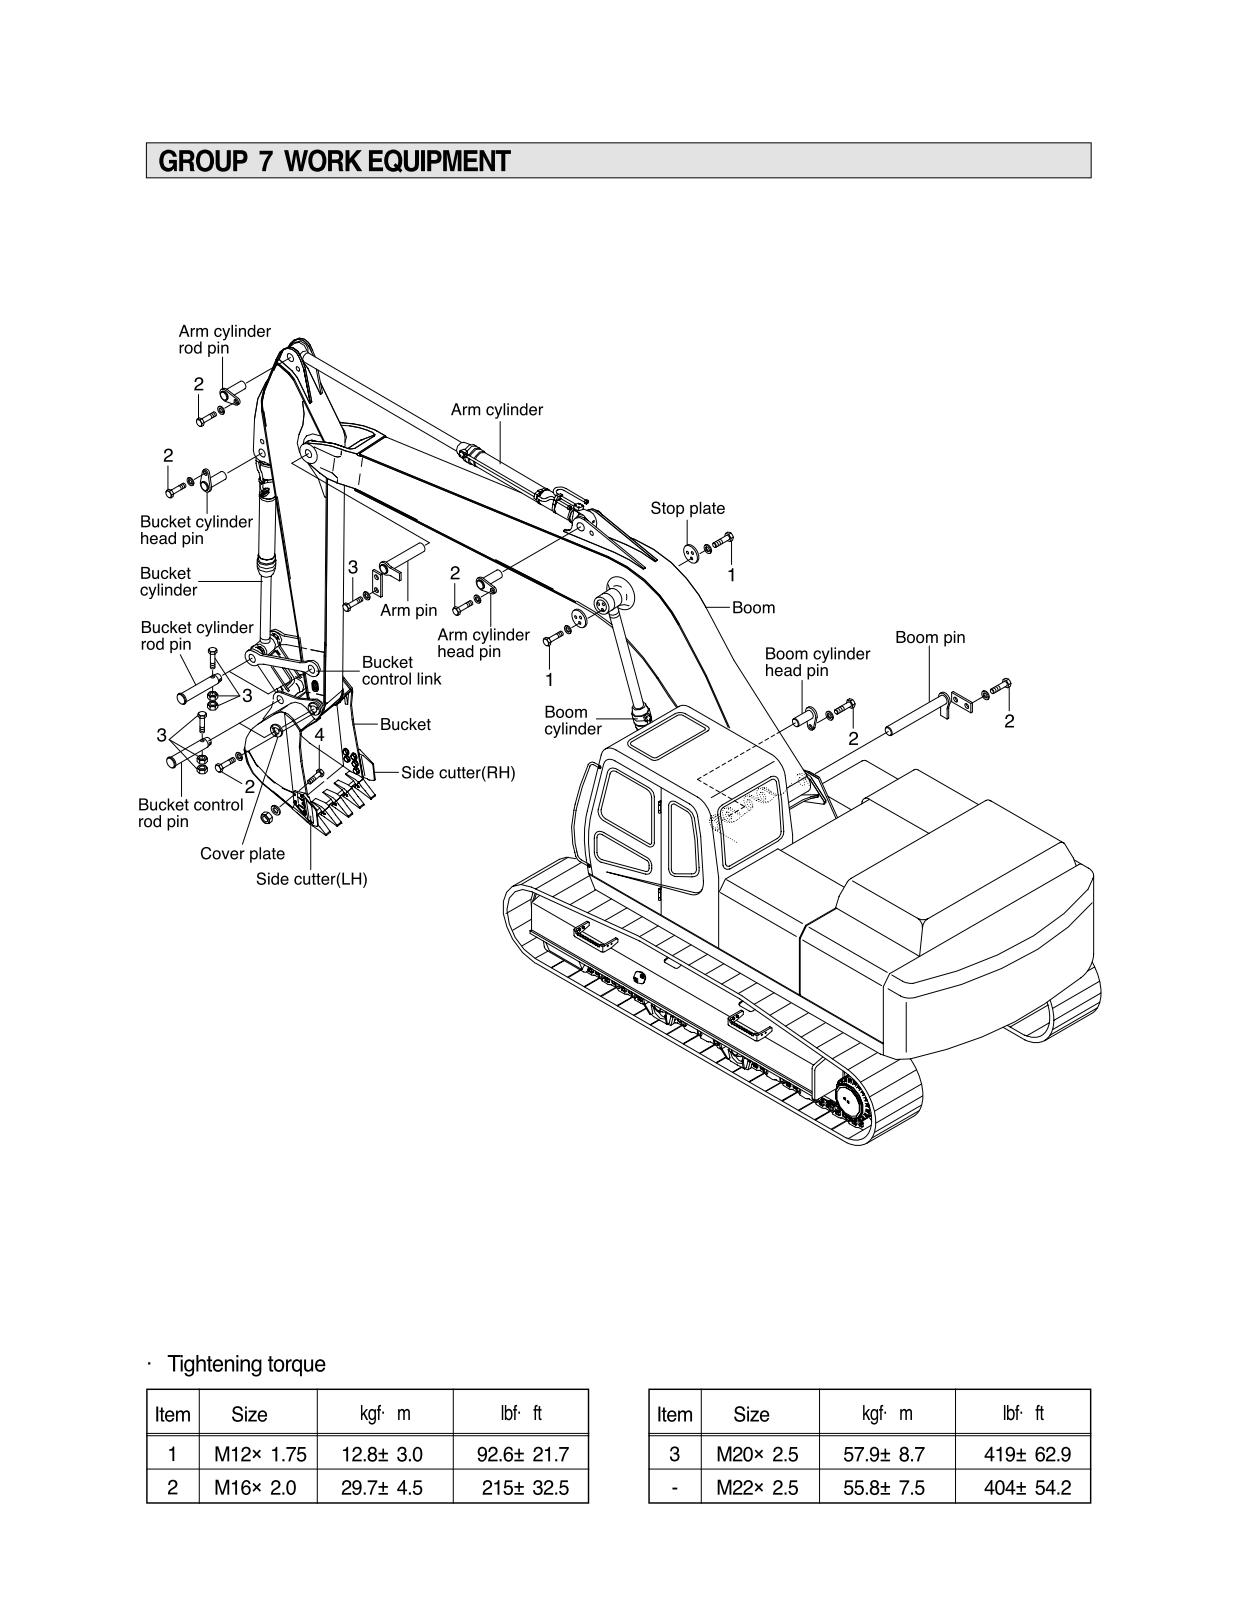 Guidelines for repair and maintenance of Hyundai R210LC-7